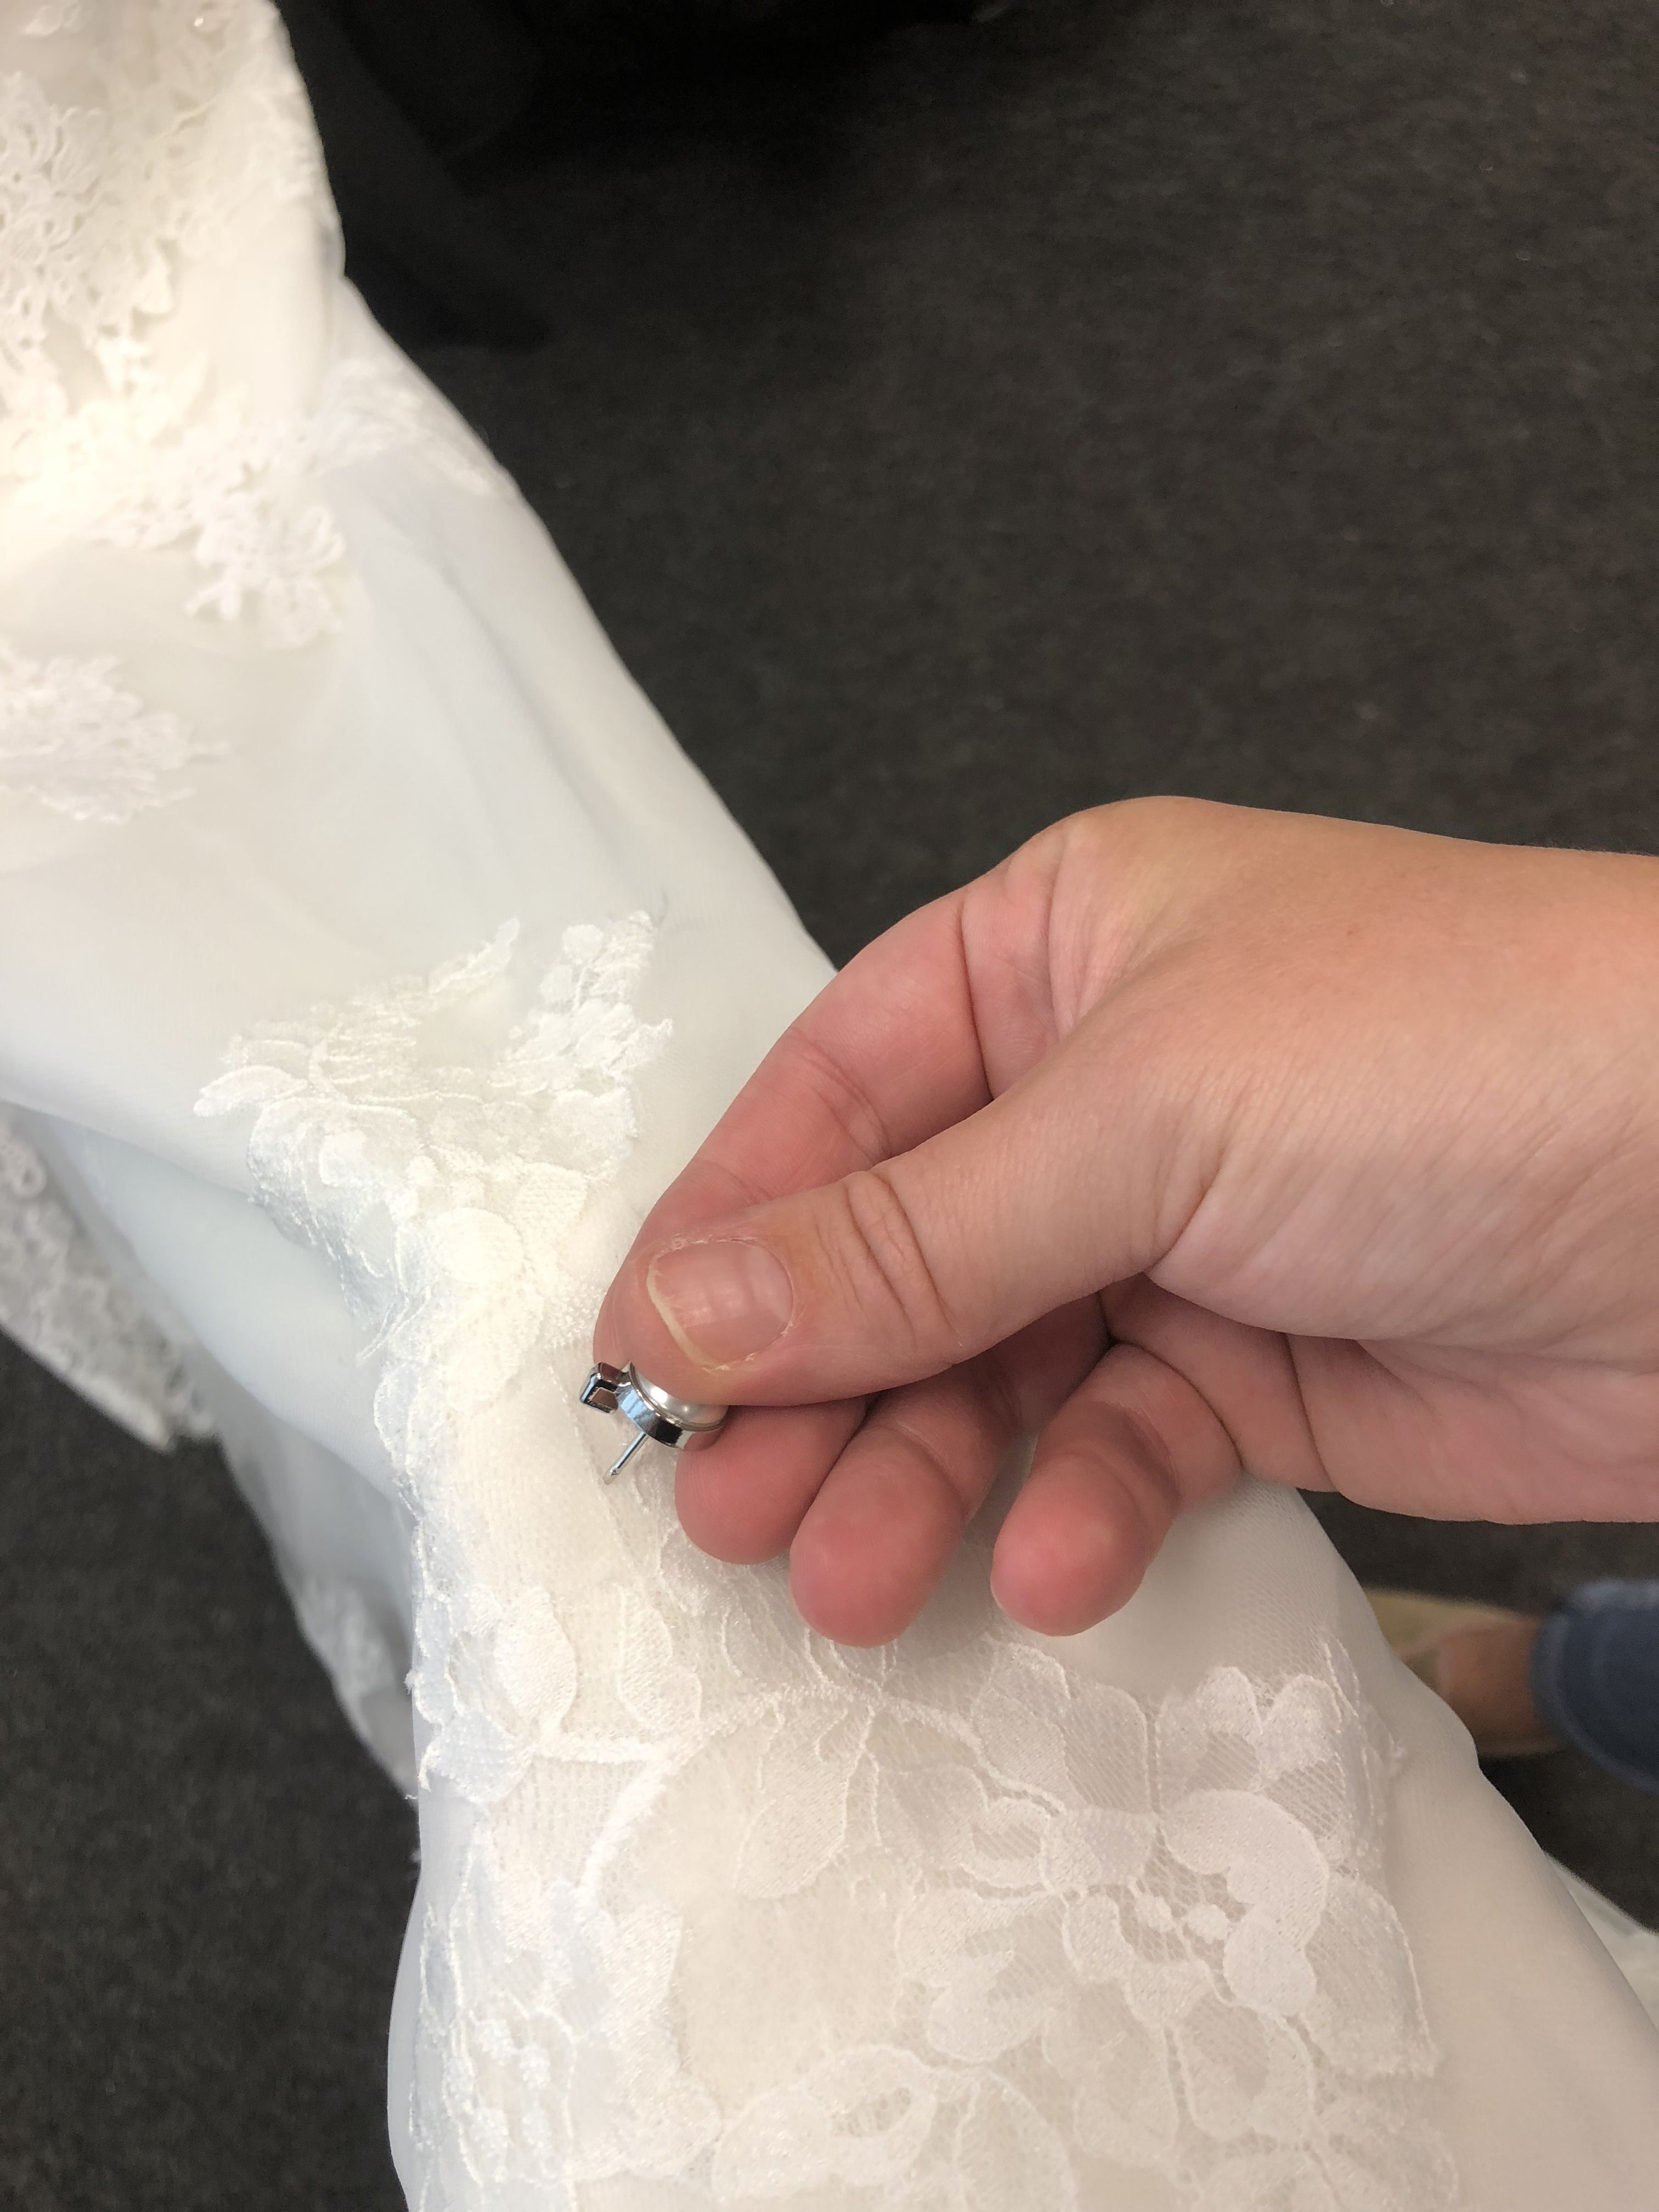 A Trainloop Simply Pins Through Your Wedding Dress Train Absolutely No Sewing Needed So Can Be Done On Your Wedding Da Wedding Dress Bustle Wedding Day Checklist Wedding Dress Train